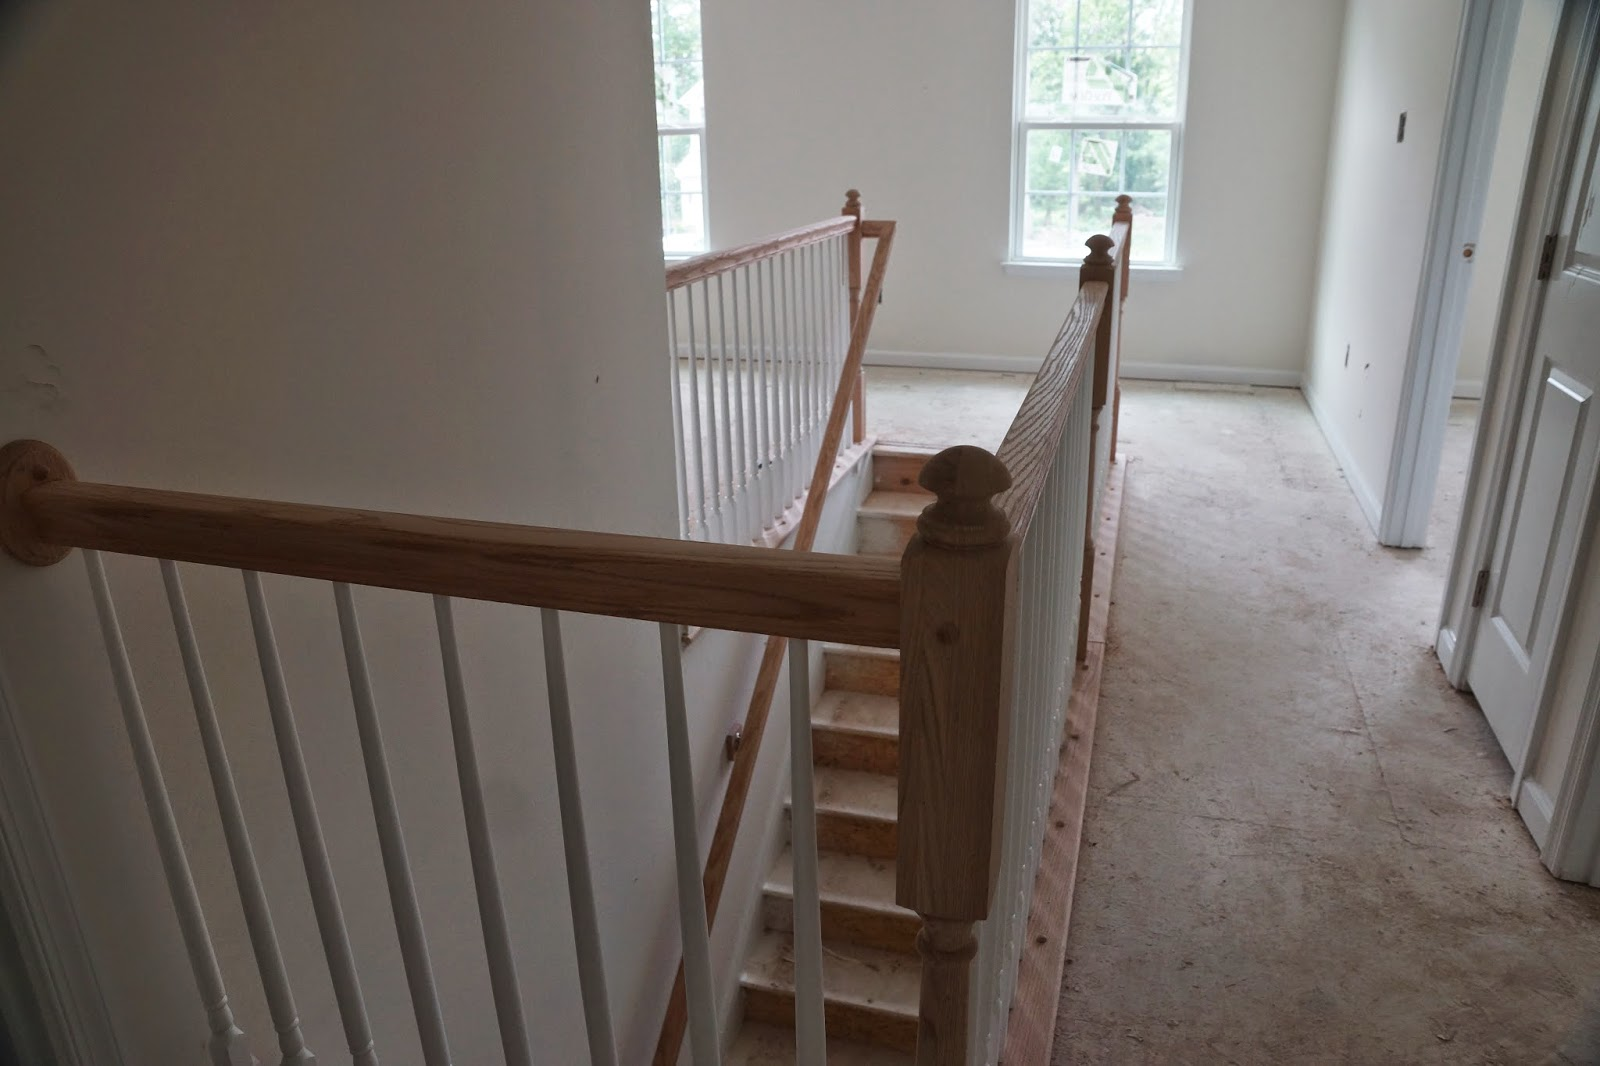 Picture of the unfinished banister on the top of the stairs as viewed from the end of the hallway